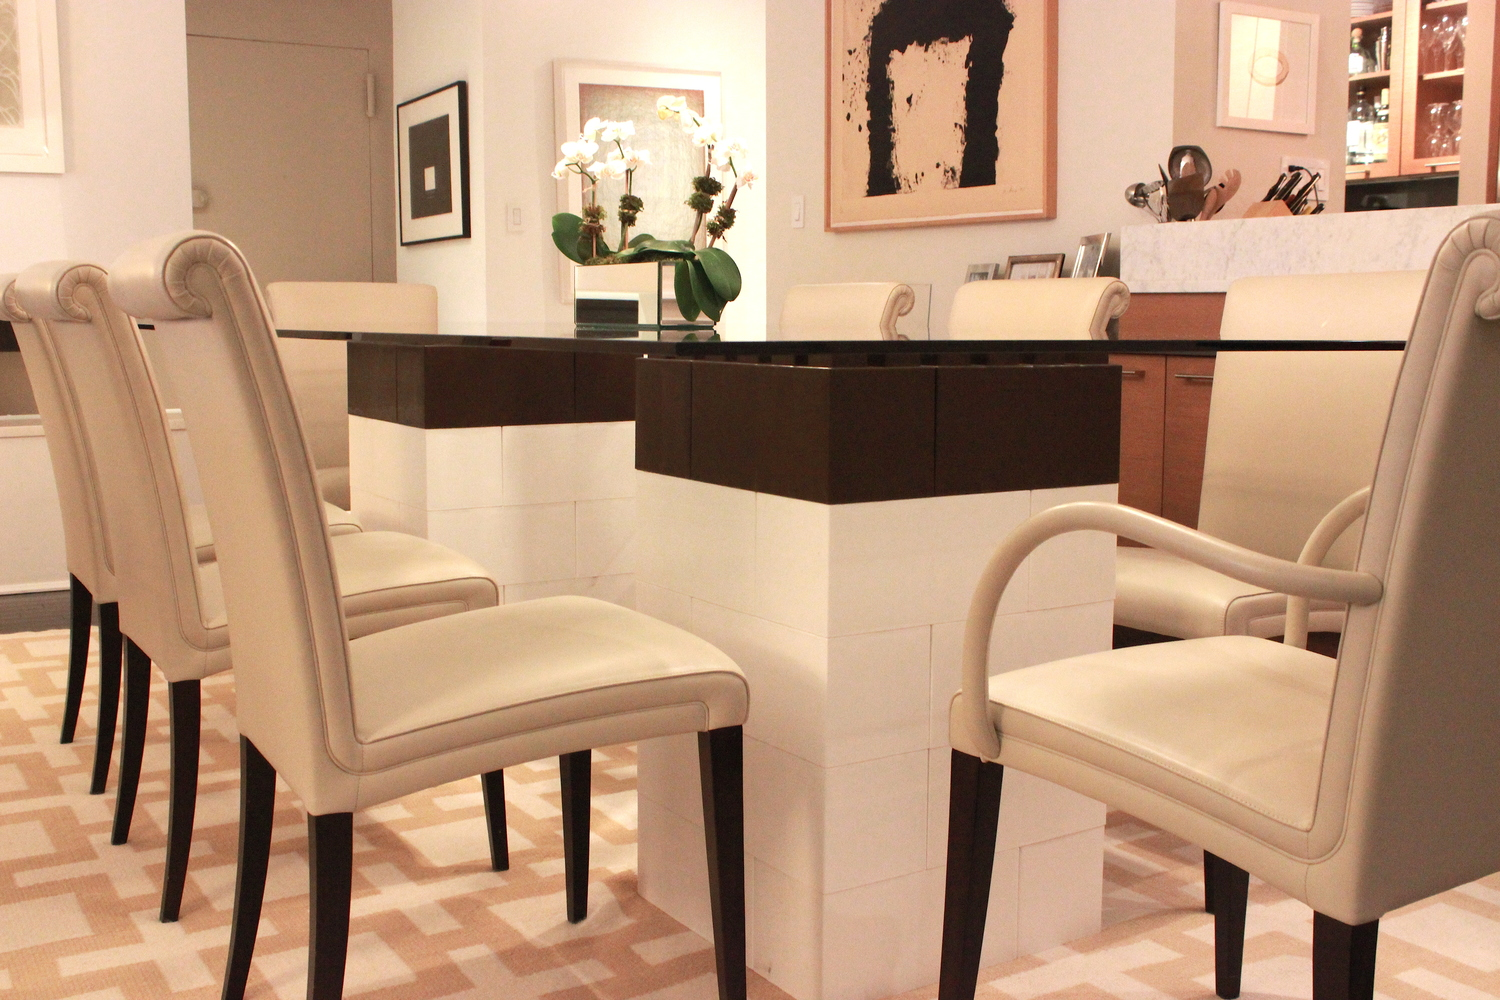 This piece of giant LEGO furniture is a dining table made of EverBlocks.